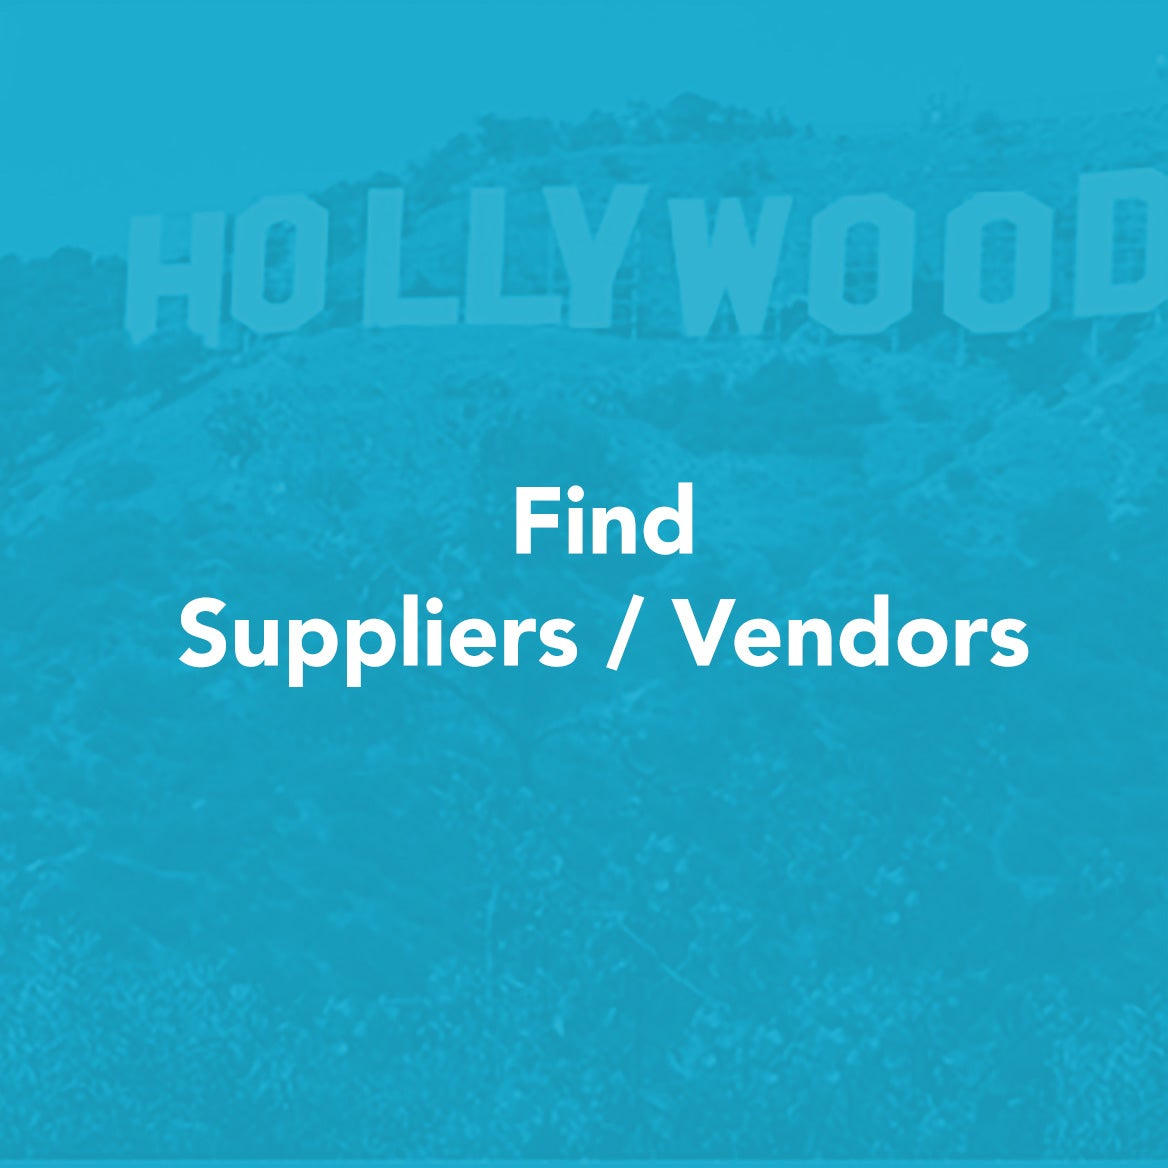 Find Suppliers / Vendors